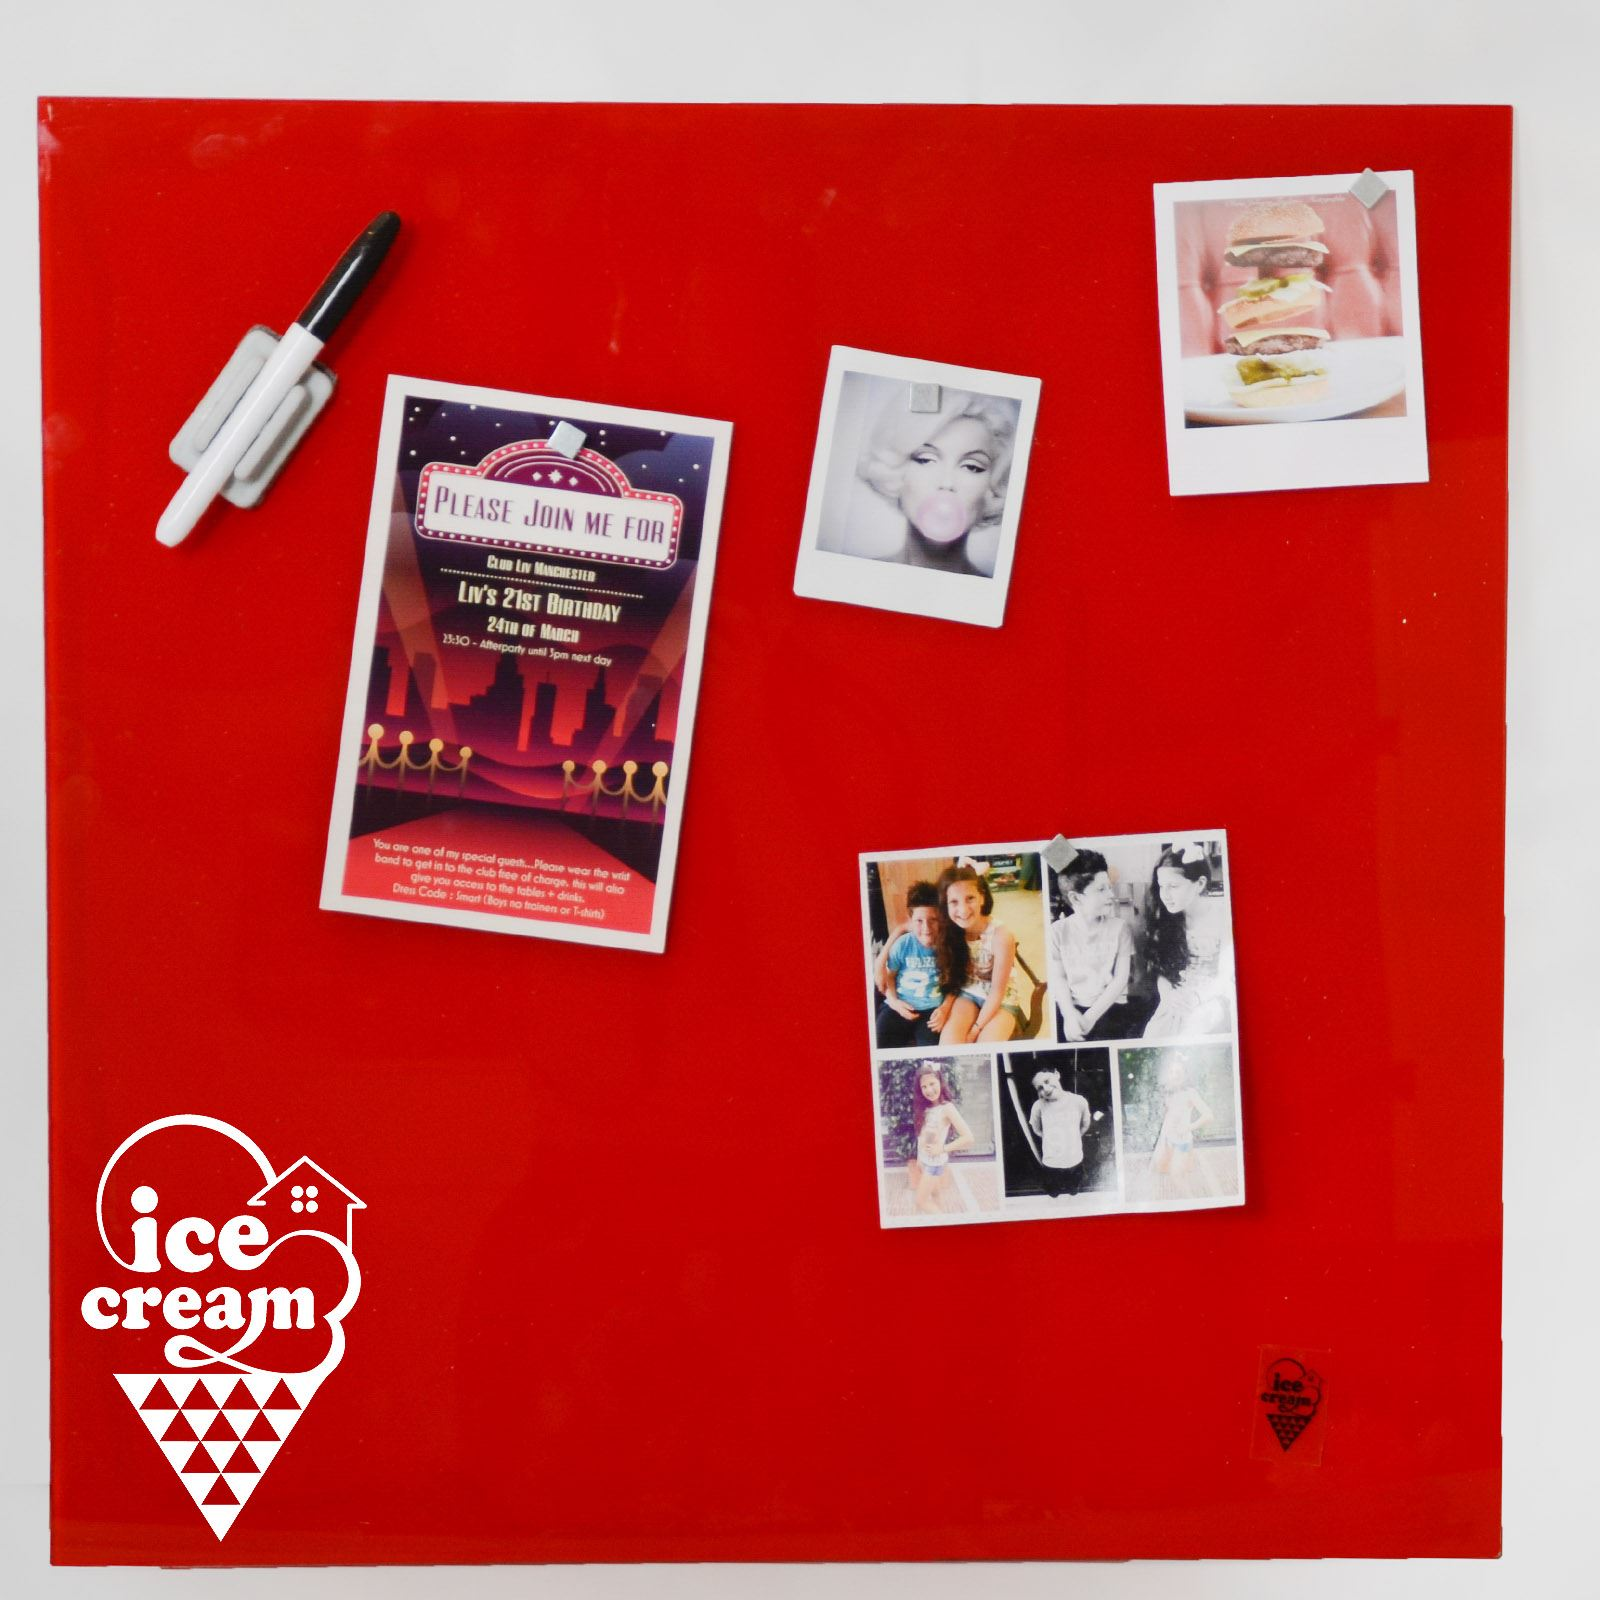 Details about Red Wall Mounted Glass Memo Board For Pictures Invitations  Reminders with Pen